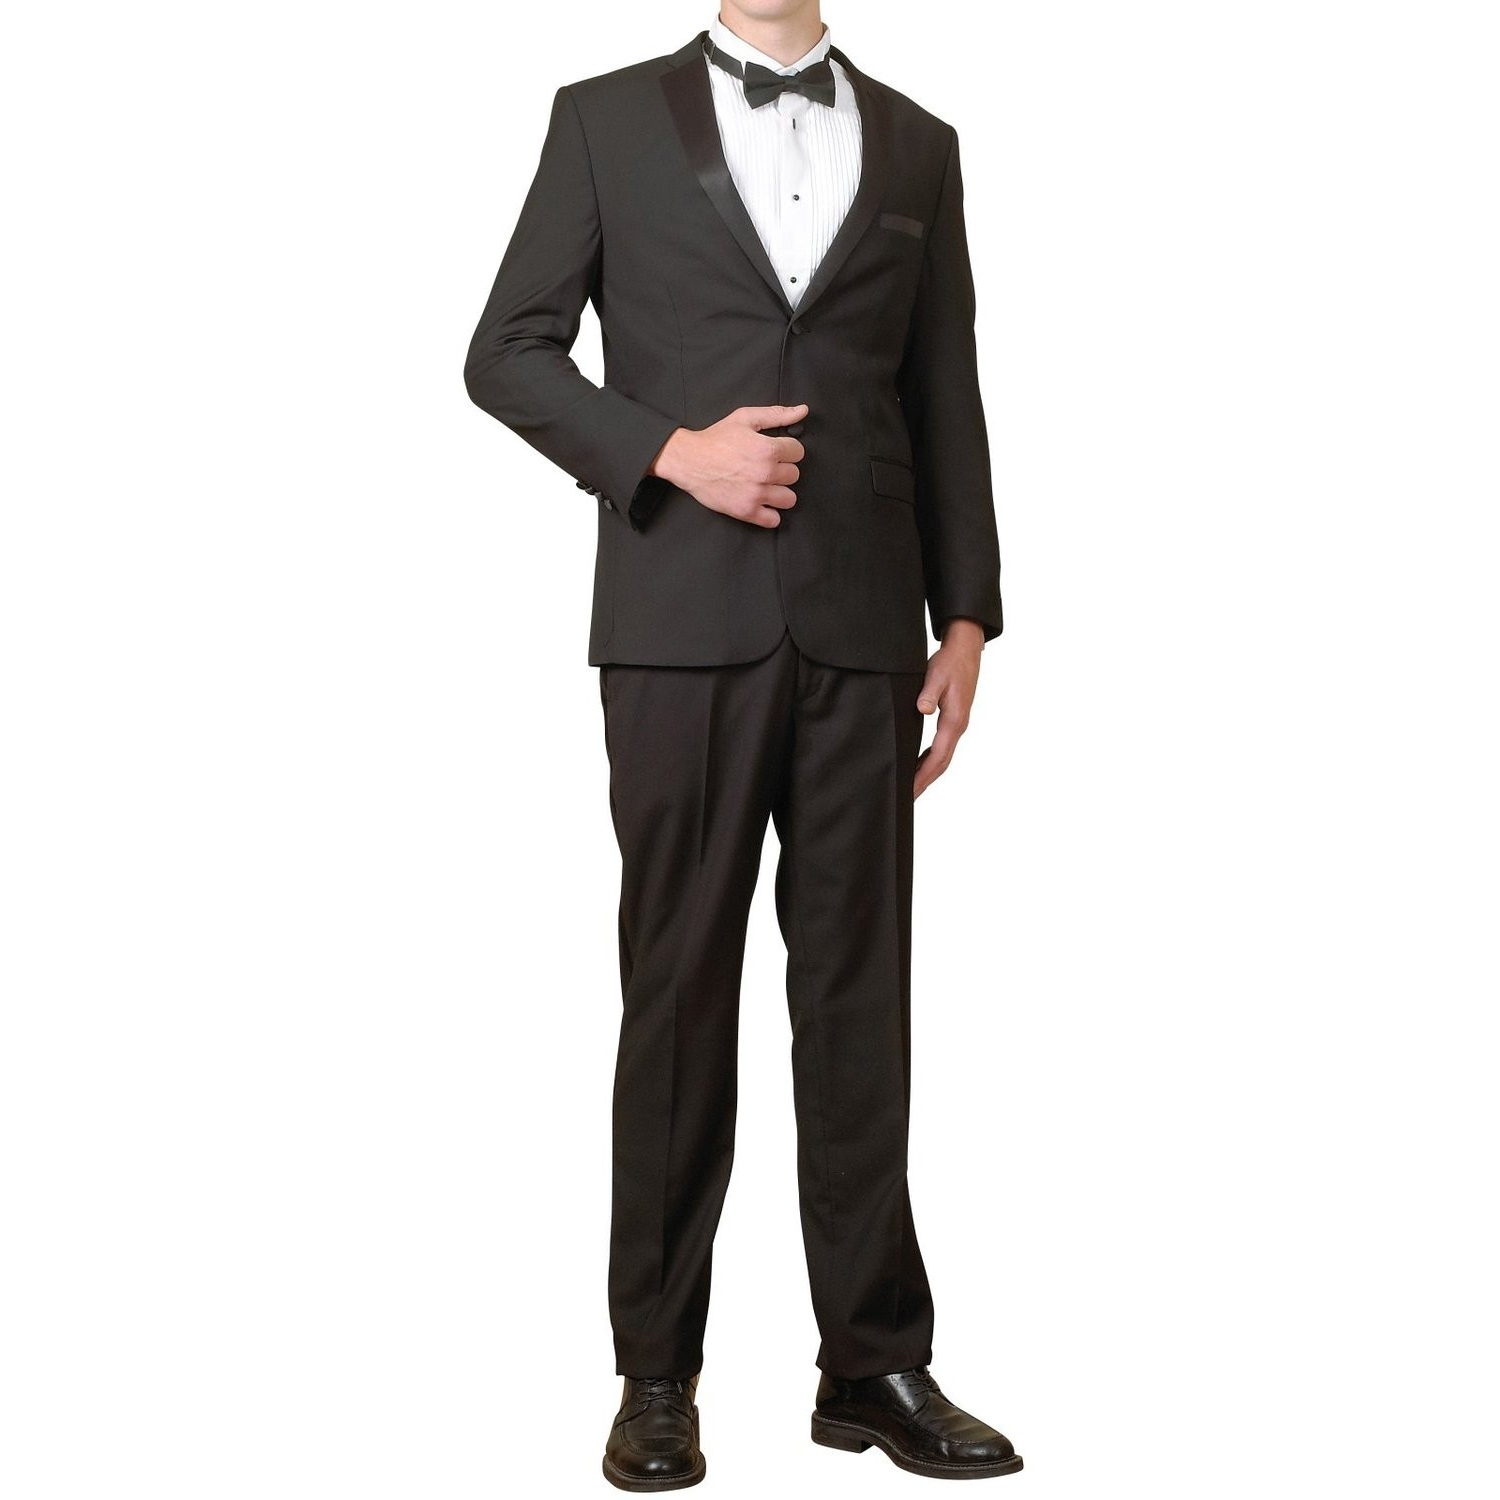 Men's Tuxedo Package | 5 Piece Complete Set | Suit Jacket...